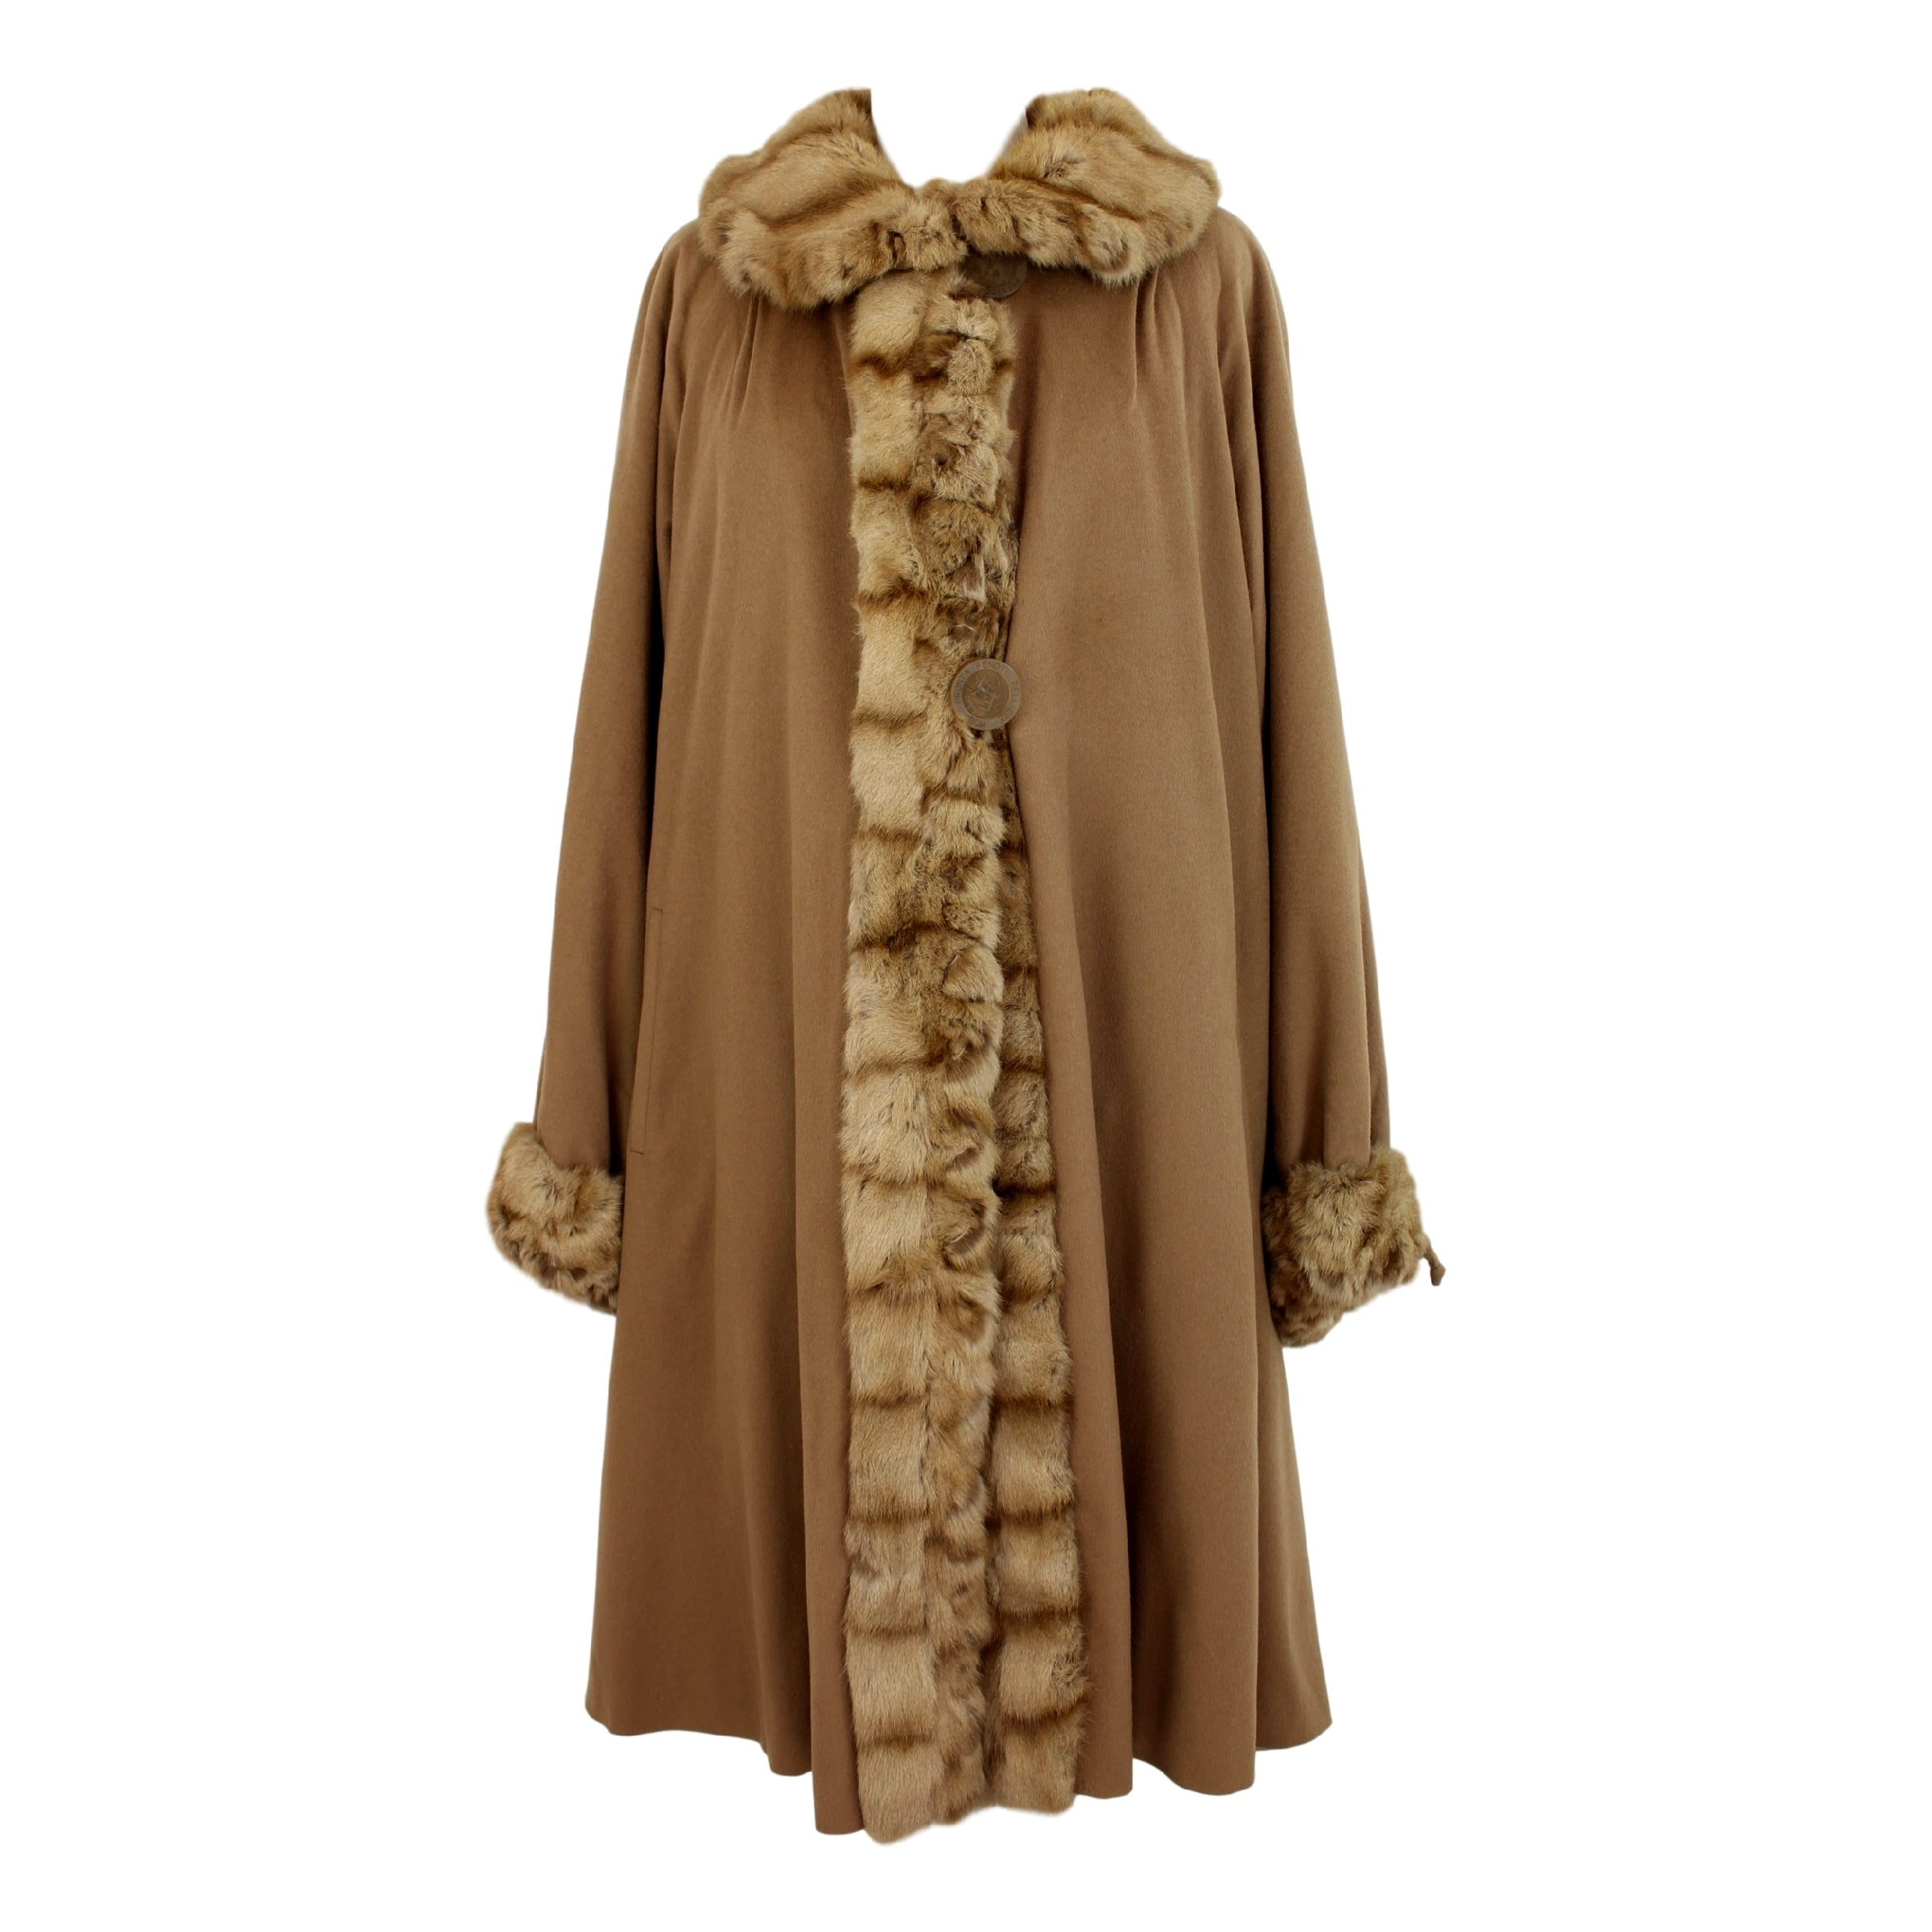 dcdaeb12 1970s Fendi Beige Fur Sable Camel Hair and Silk Coat